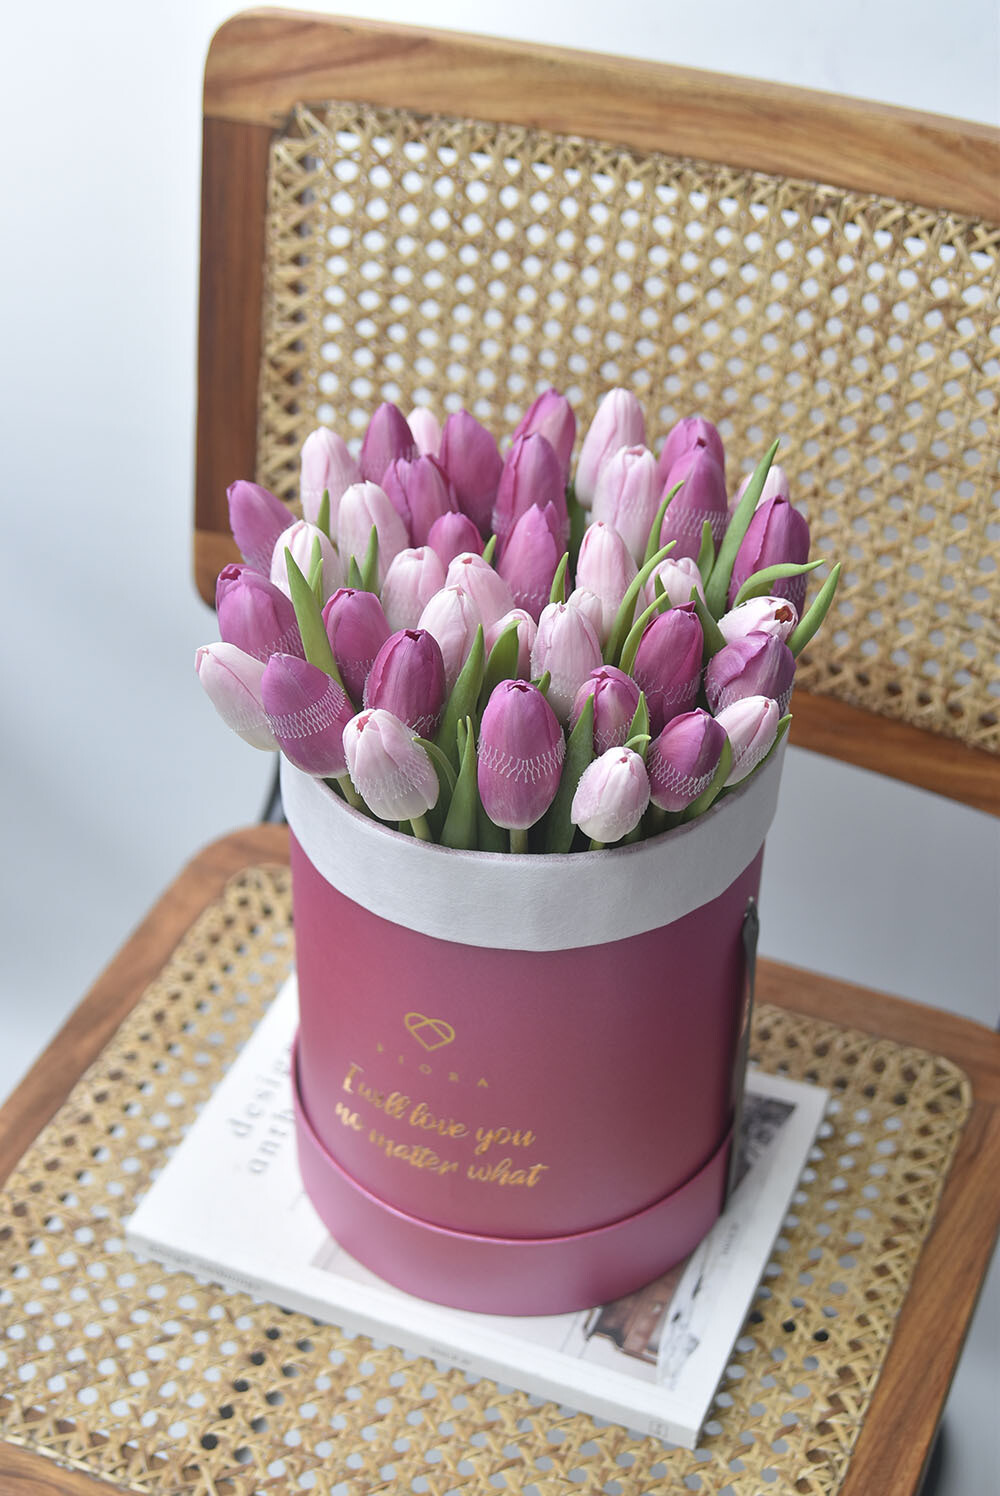 Big Bucket Tulips (Inquire first re. availability)